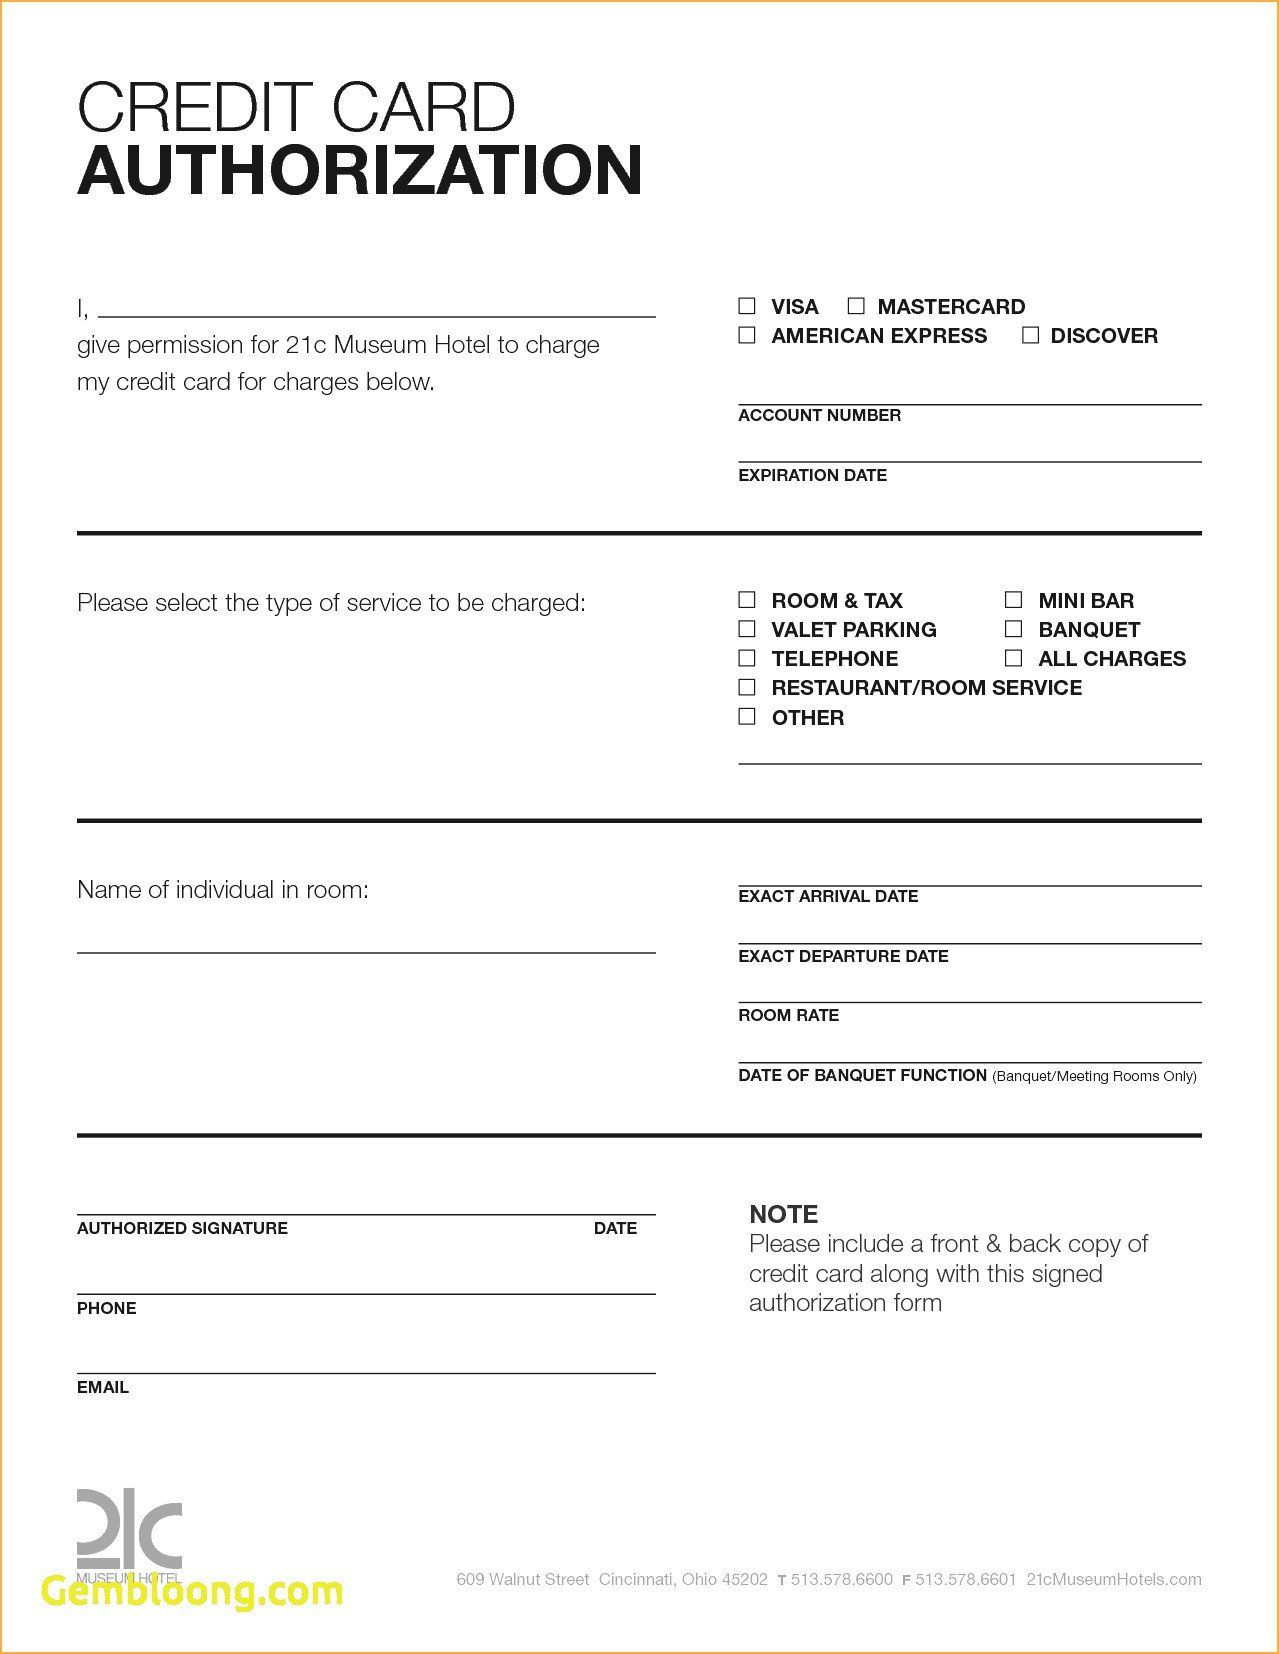 credit card form template awesome culinary resume with no experience nursing templates 2019 sample for maintenance technician